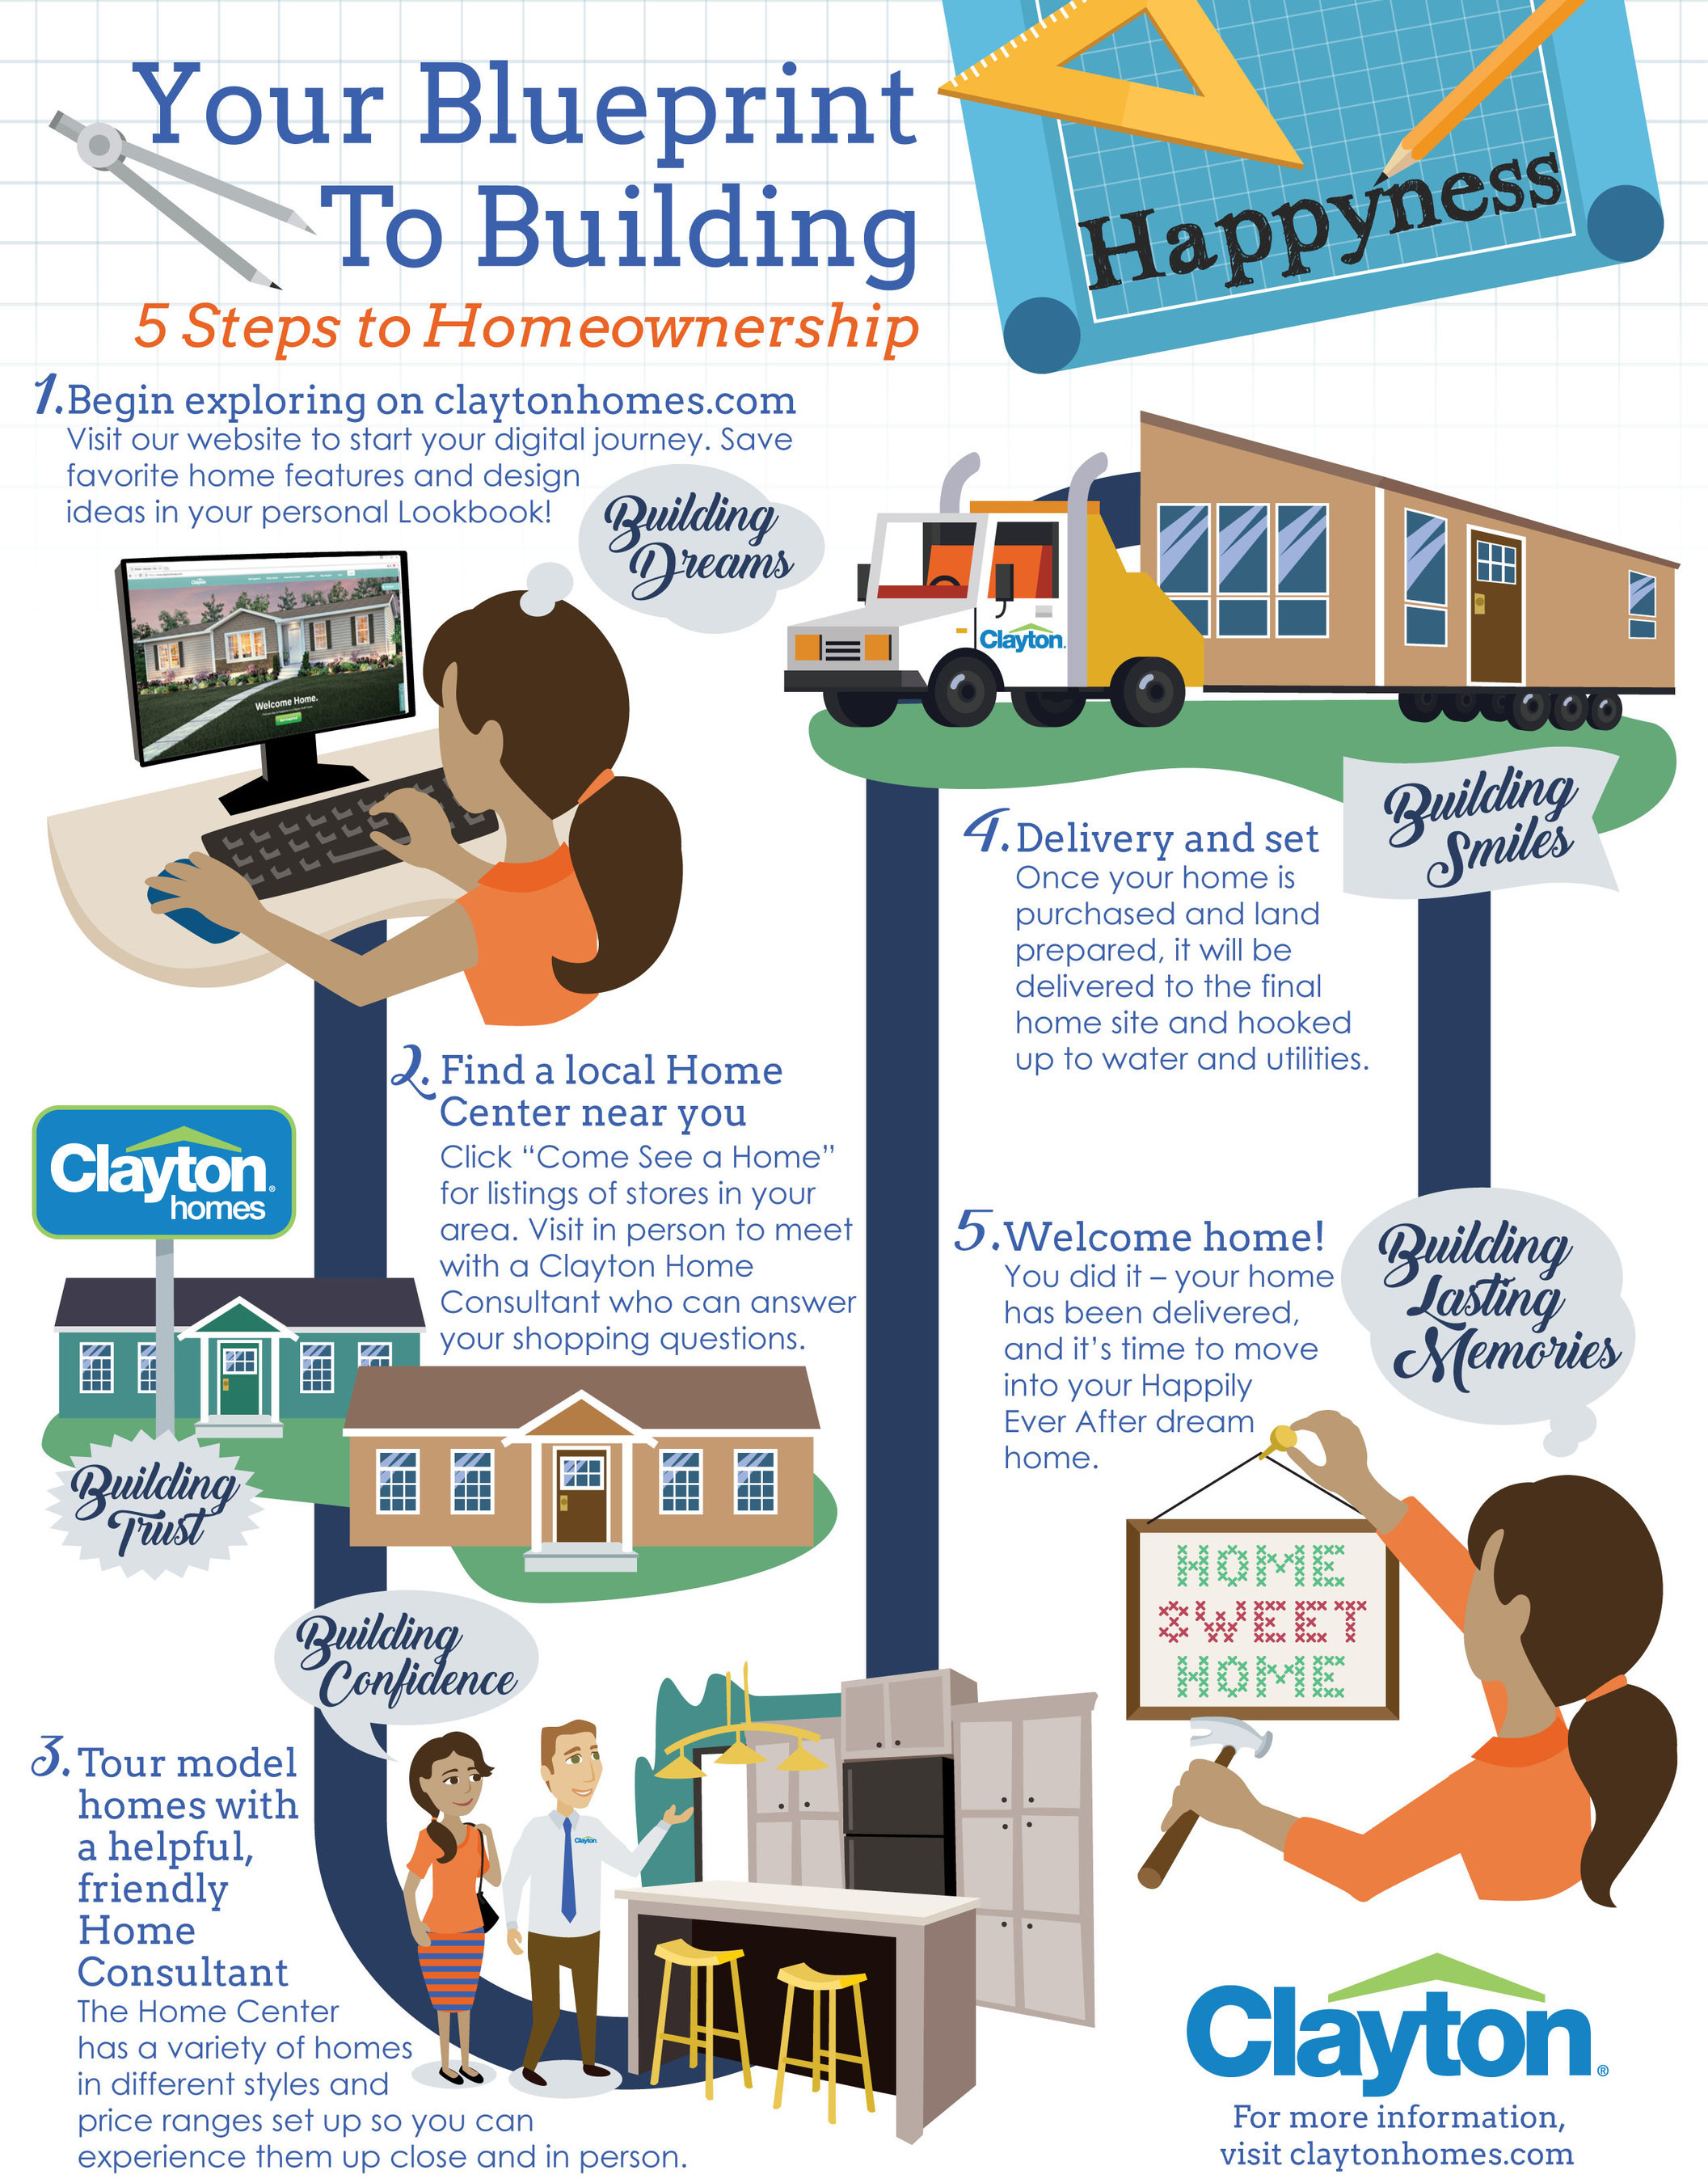 See the five steps to homeownership in this infographic.